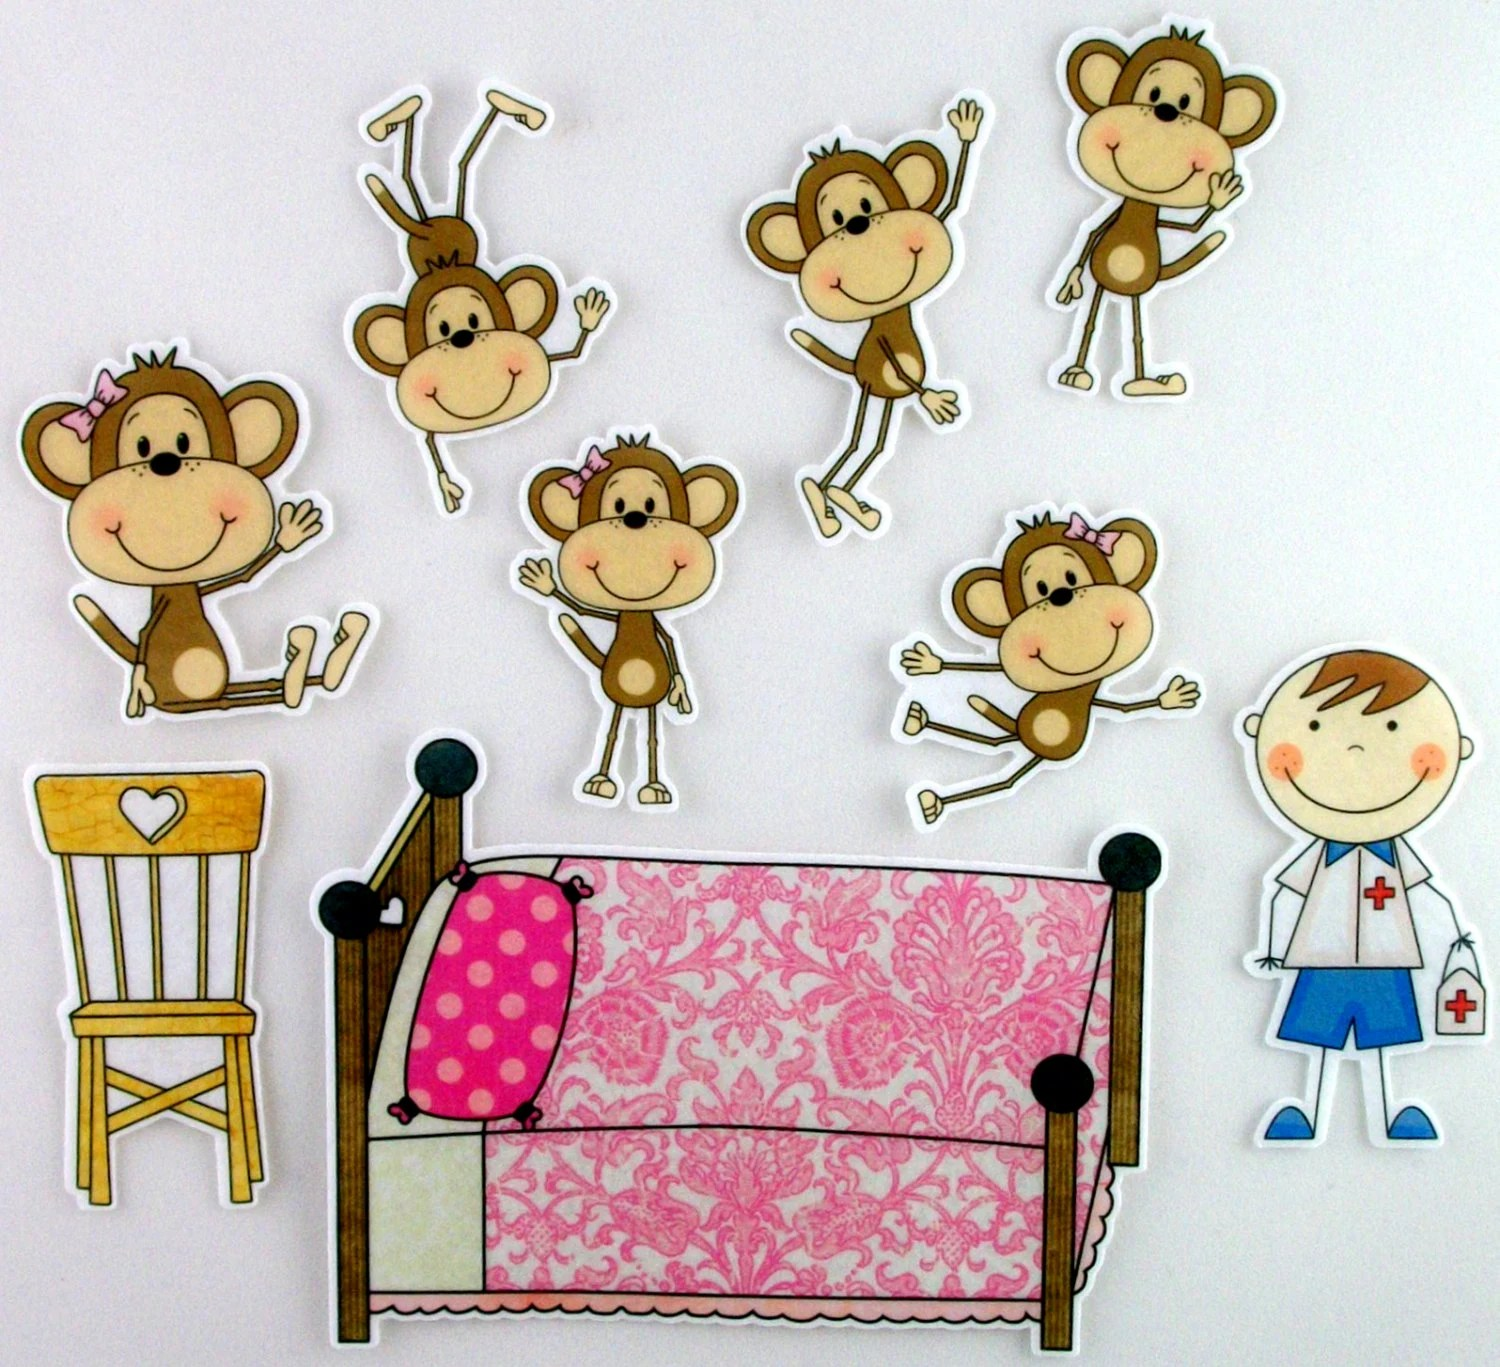 Five Little Monkeys Jumping On The Bed Felt Board By Bymaree